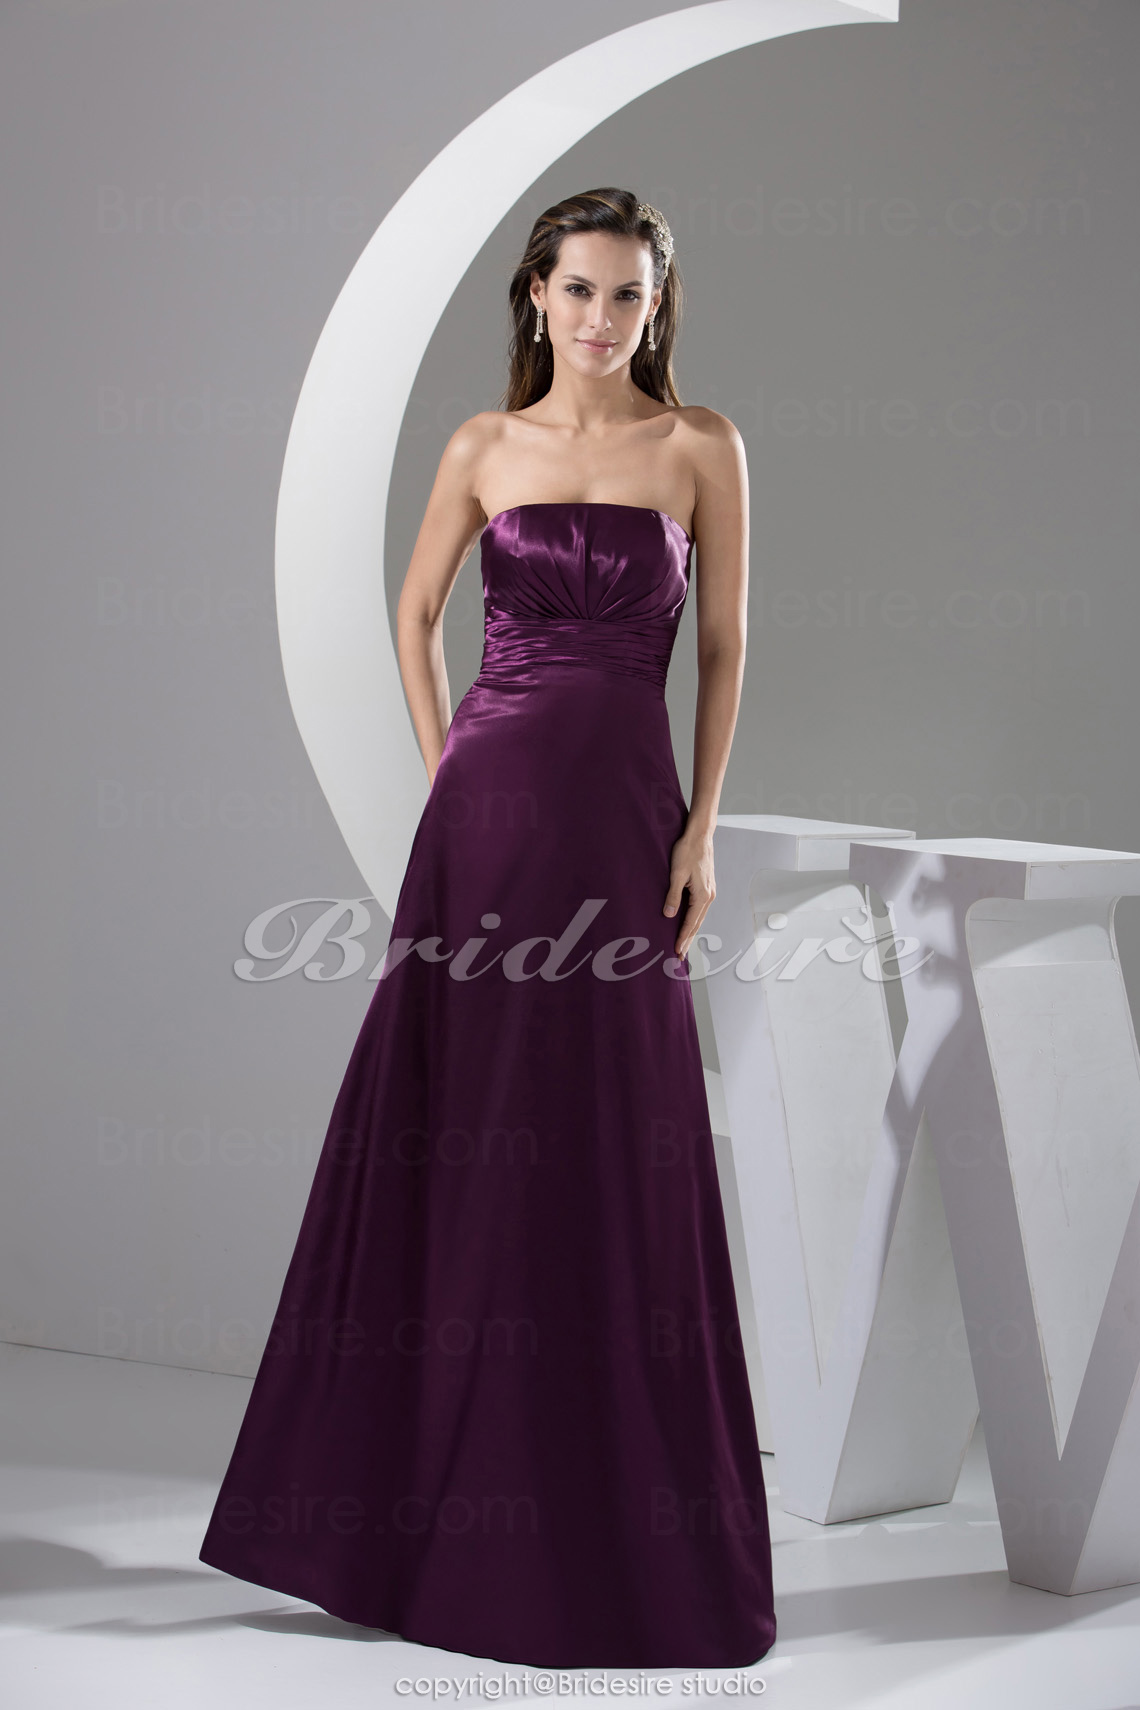 A-line Strapless Floor-length Sleeveless Satin Bridesmaid Dress